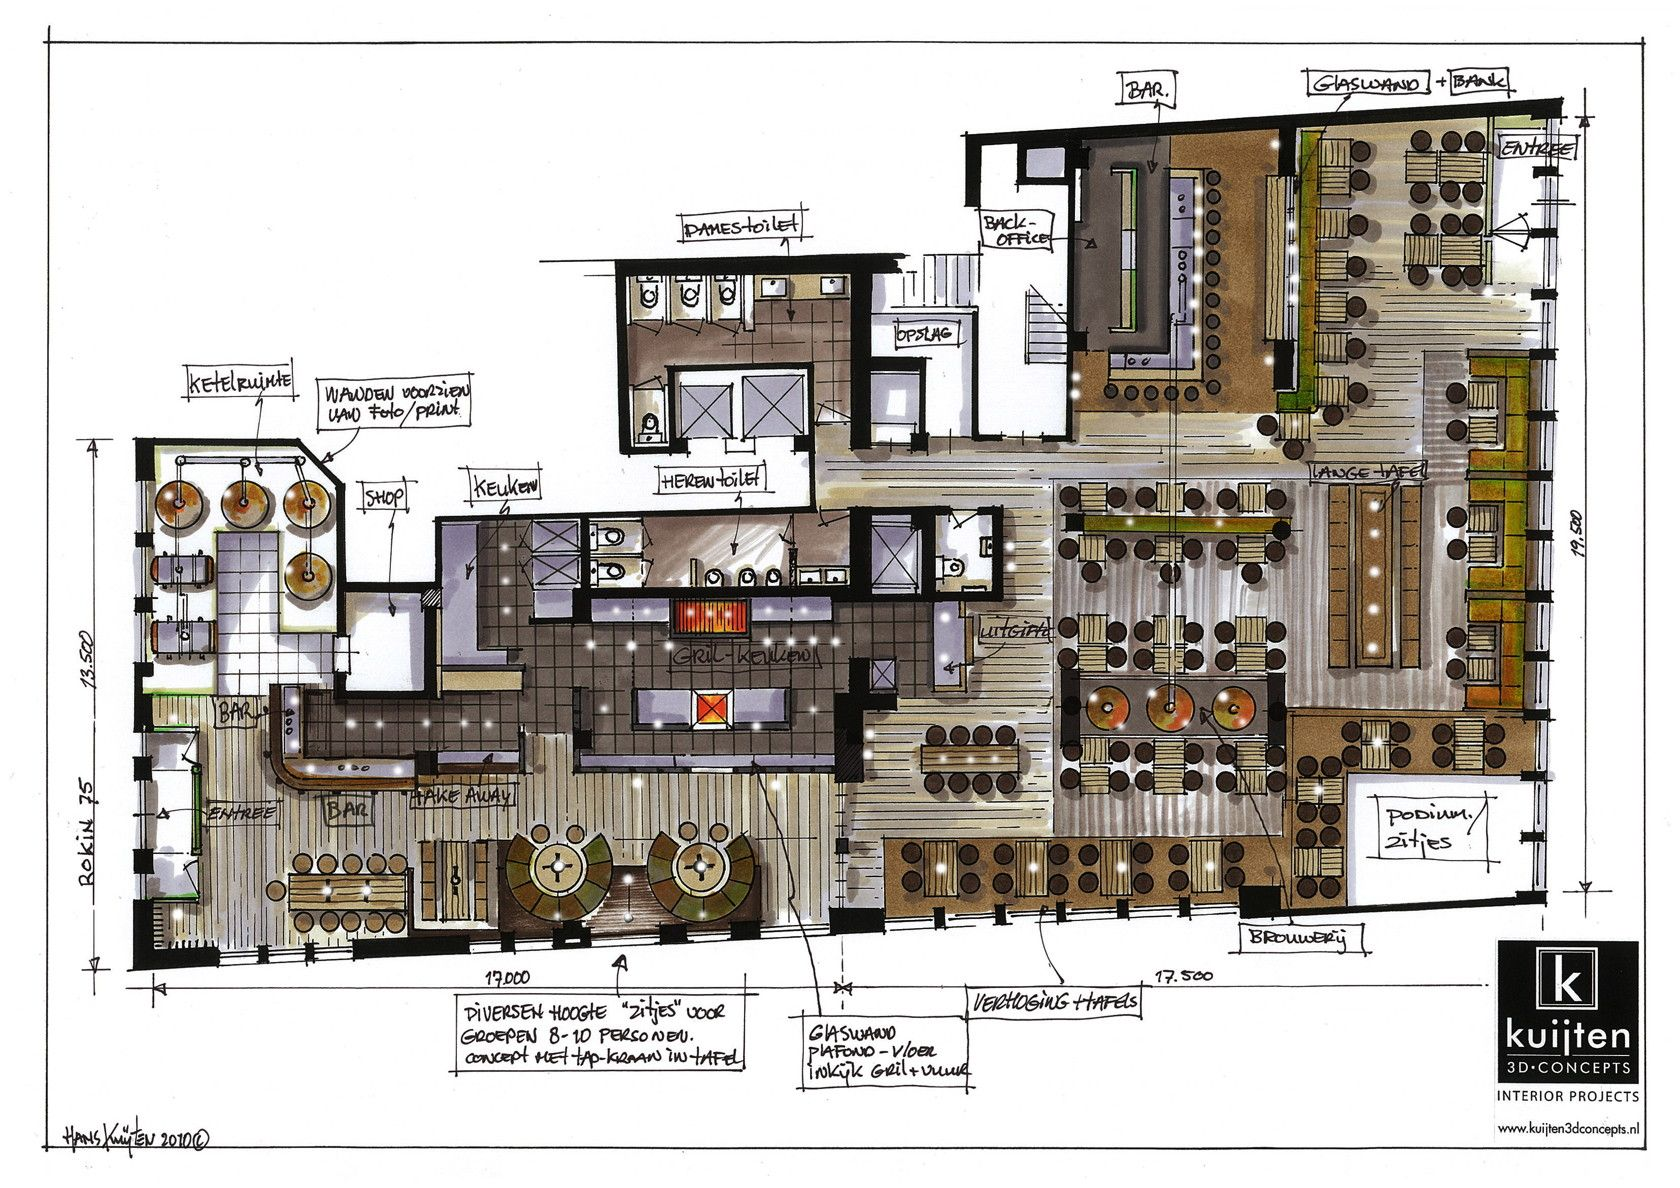 Hans kuijten projecten plan graphics i like it what for Restaurant drawings floor plans